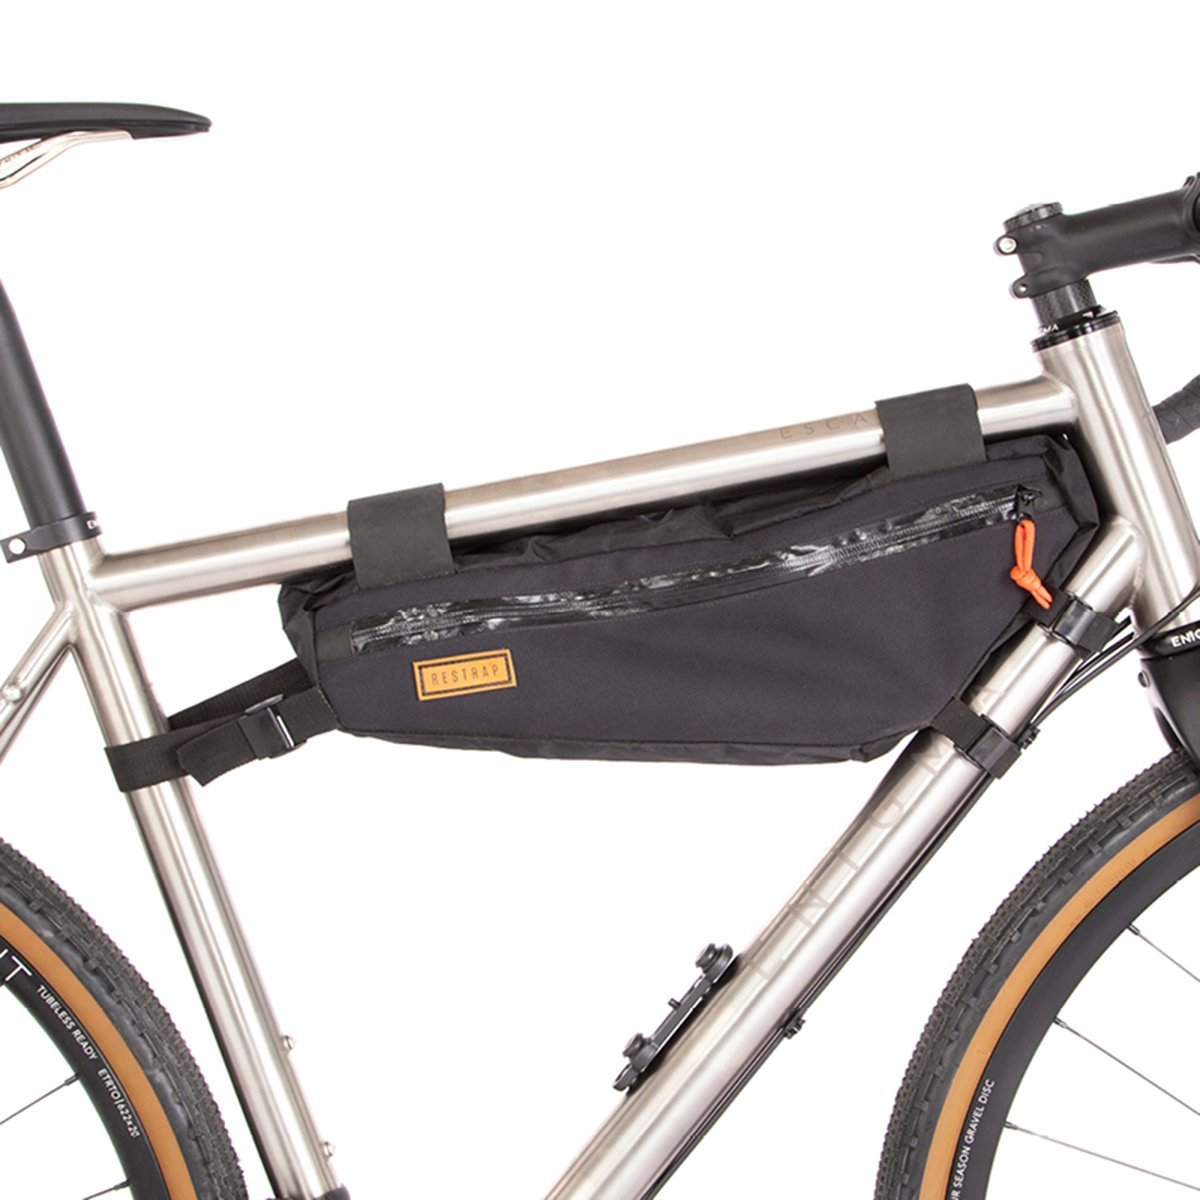 Restrap | Frame Bag | Medium | Bike Frame Bag | Bikepacking Bag | Black